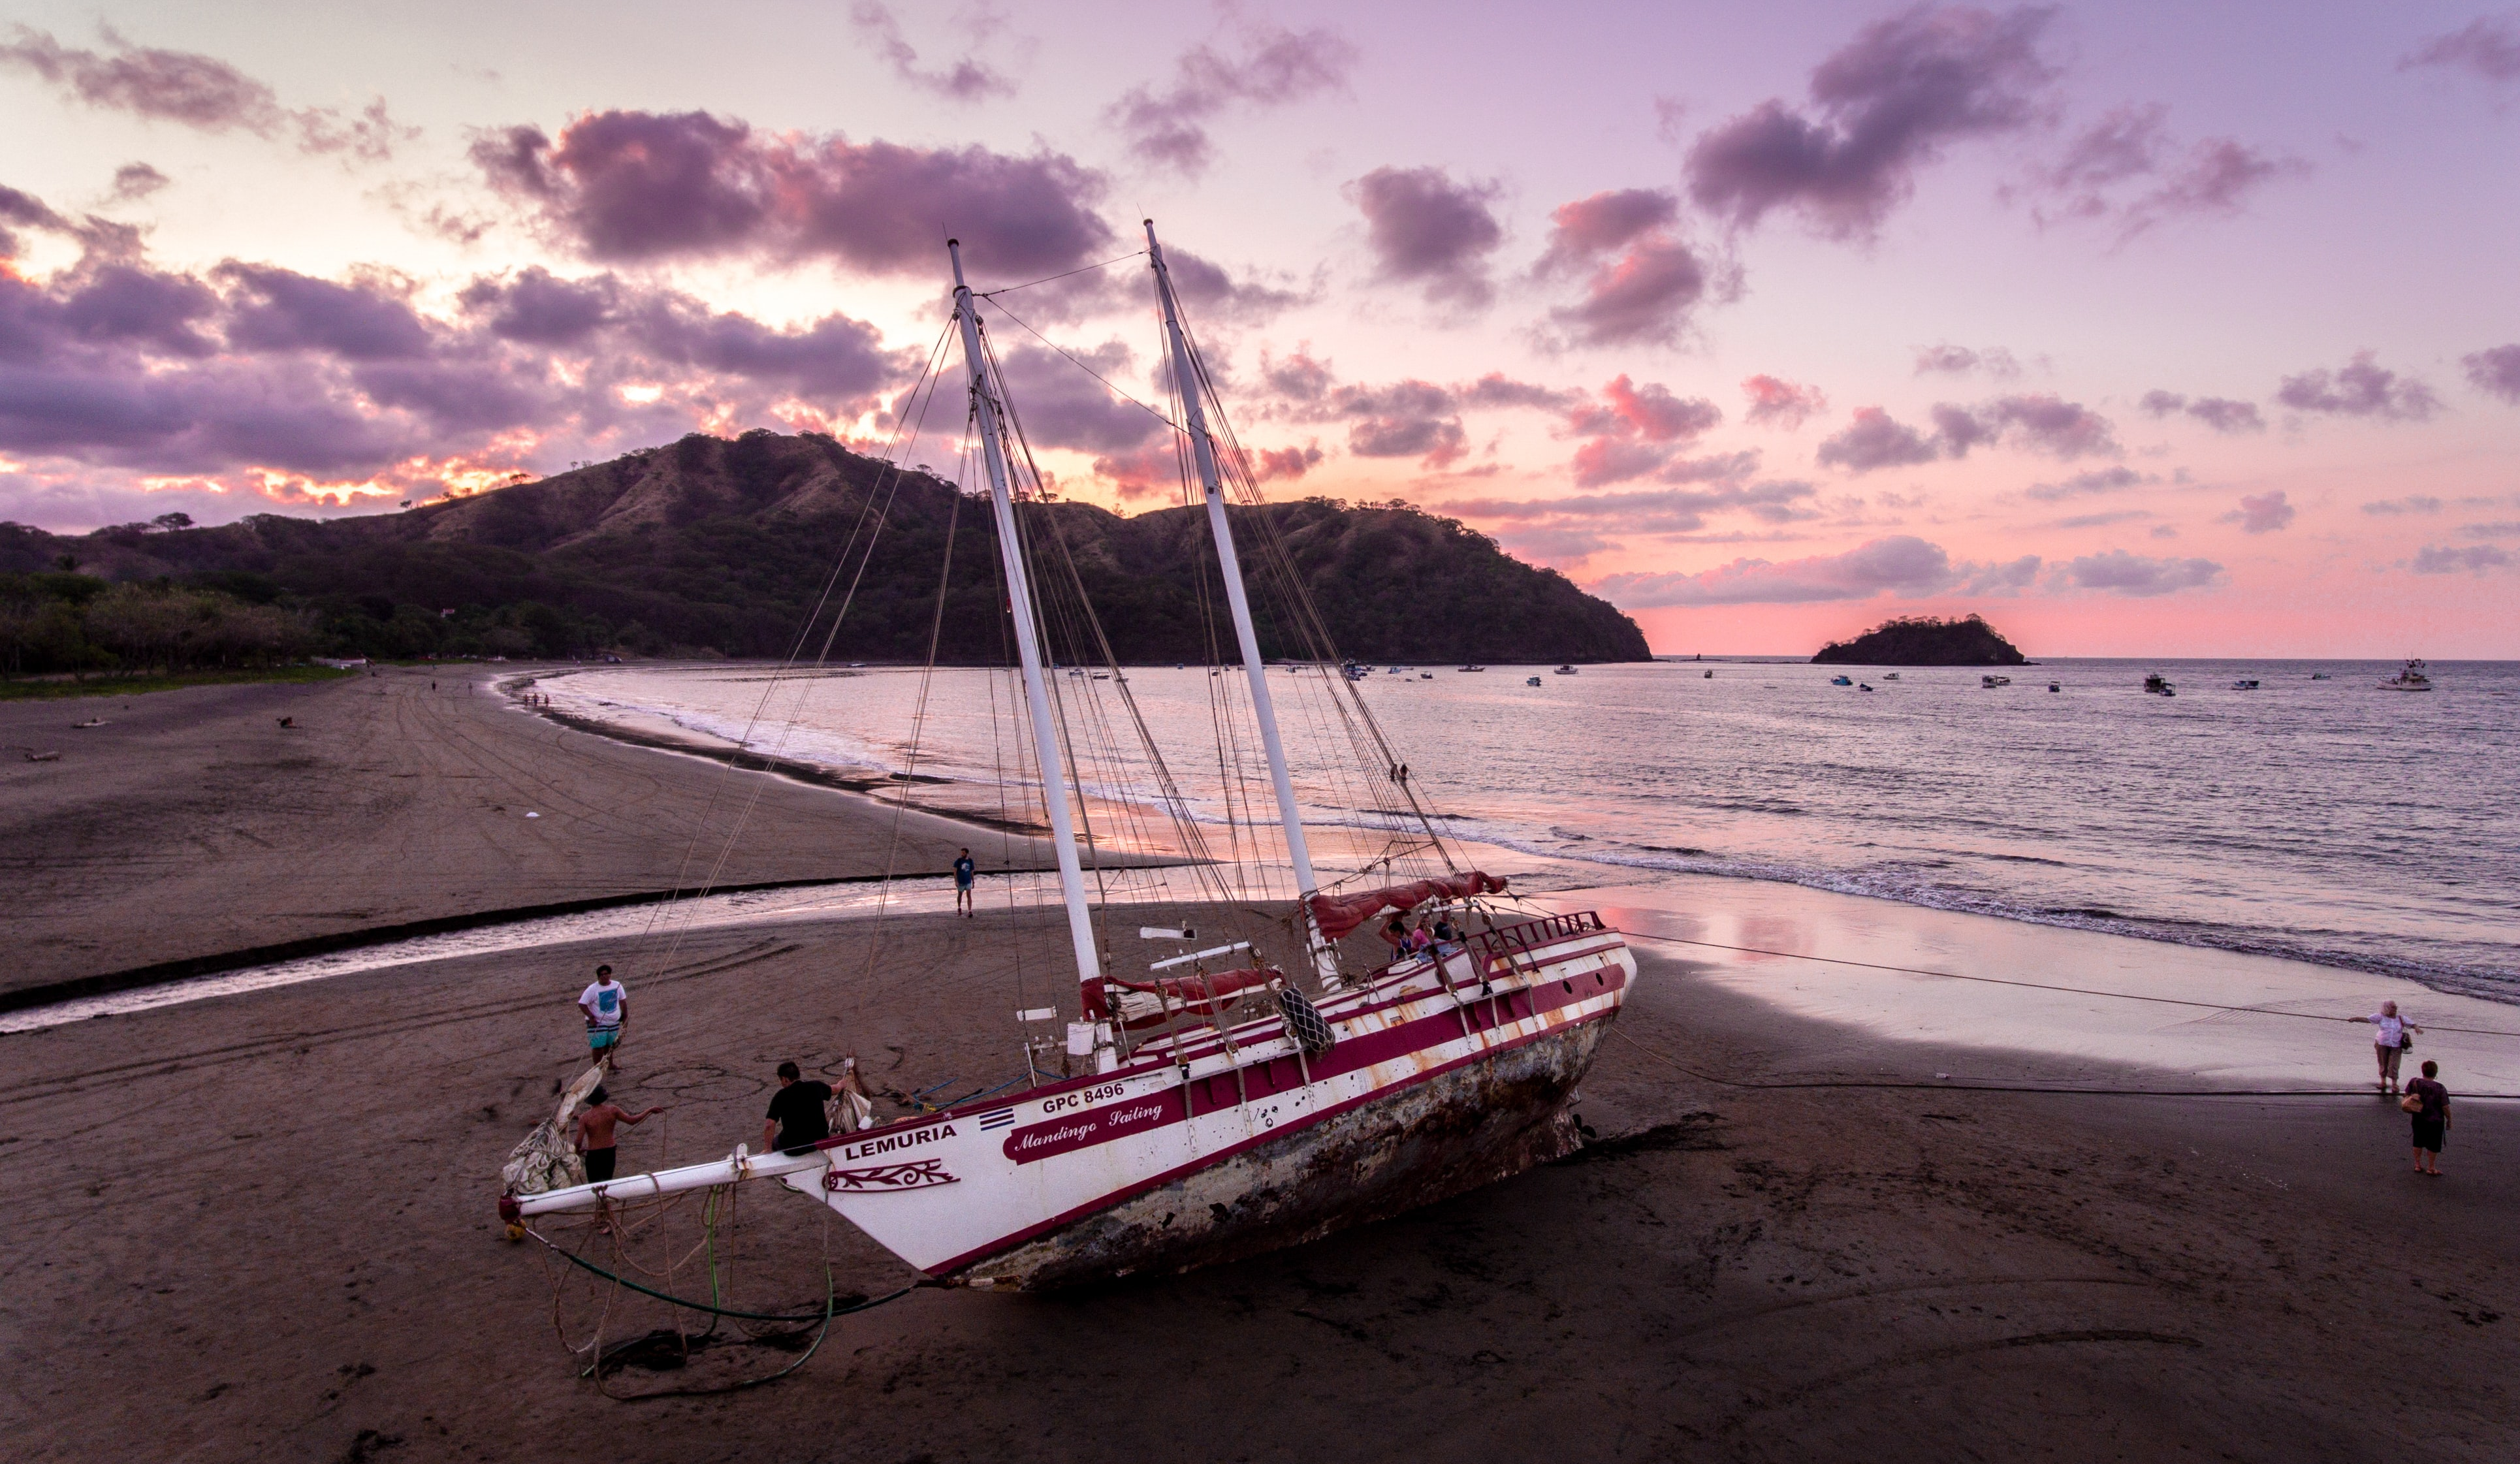 white and red sail boat on seashore